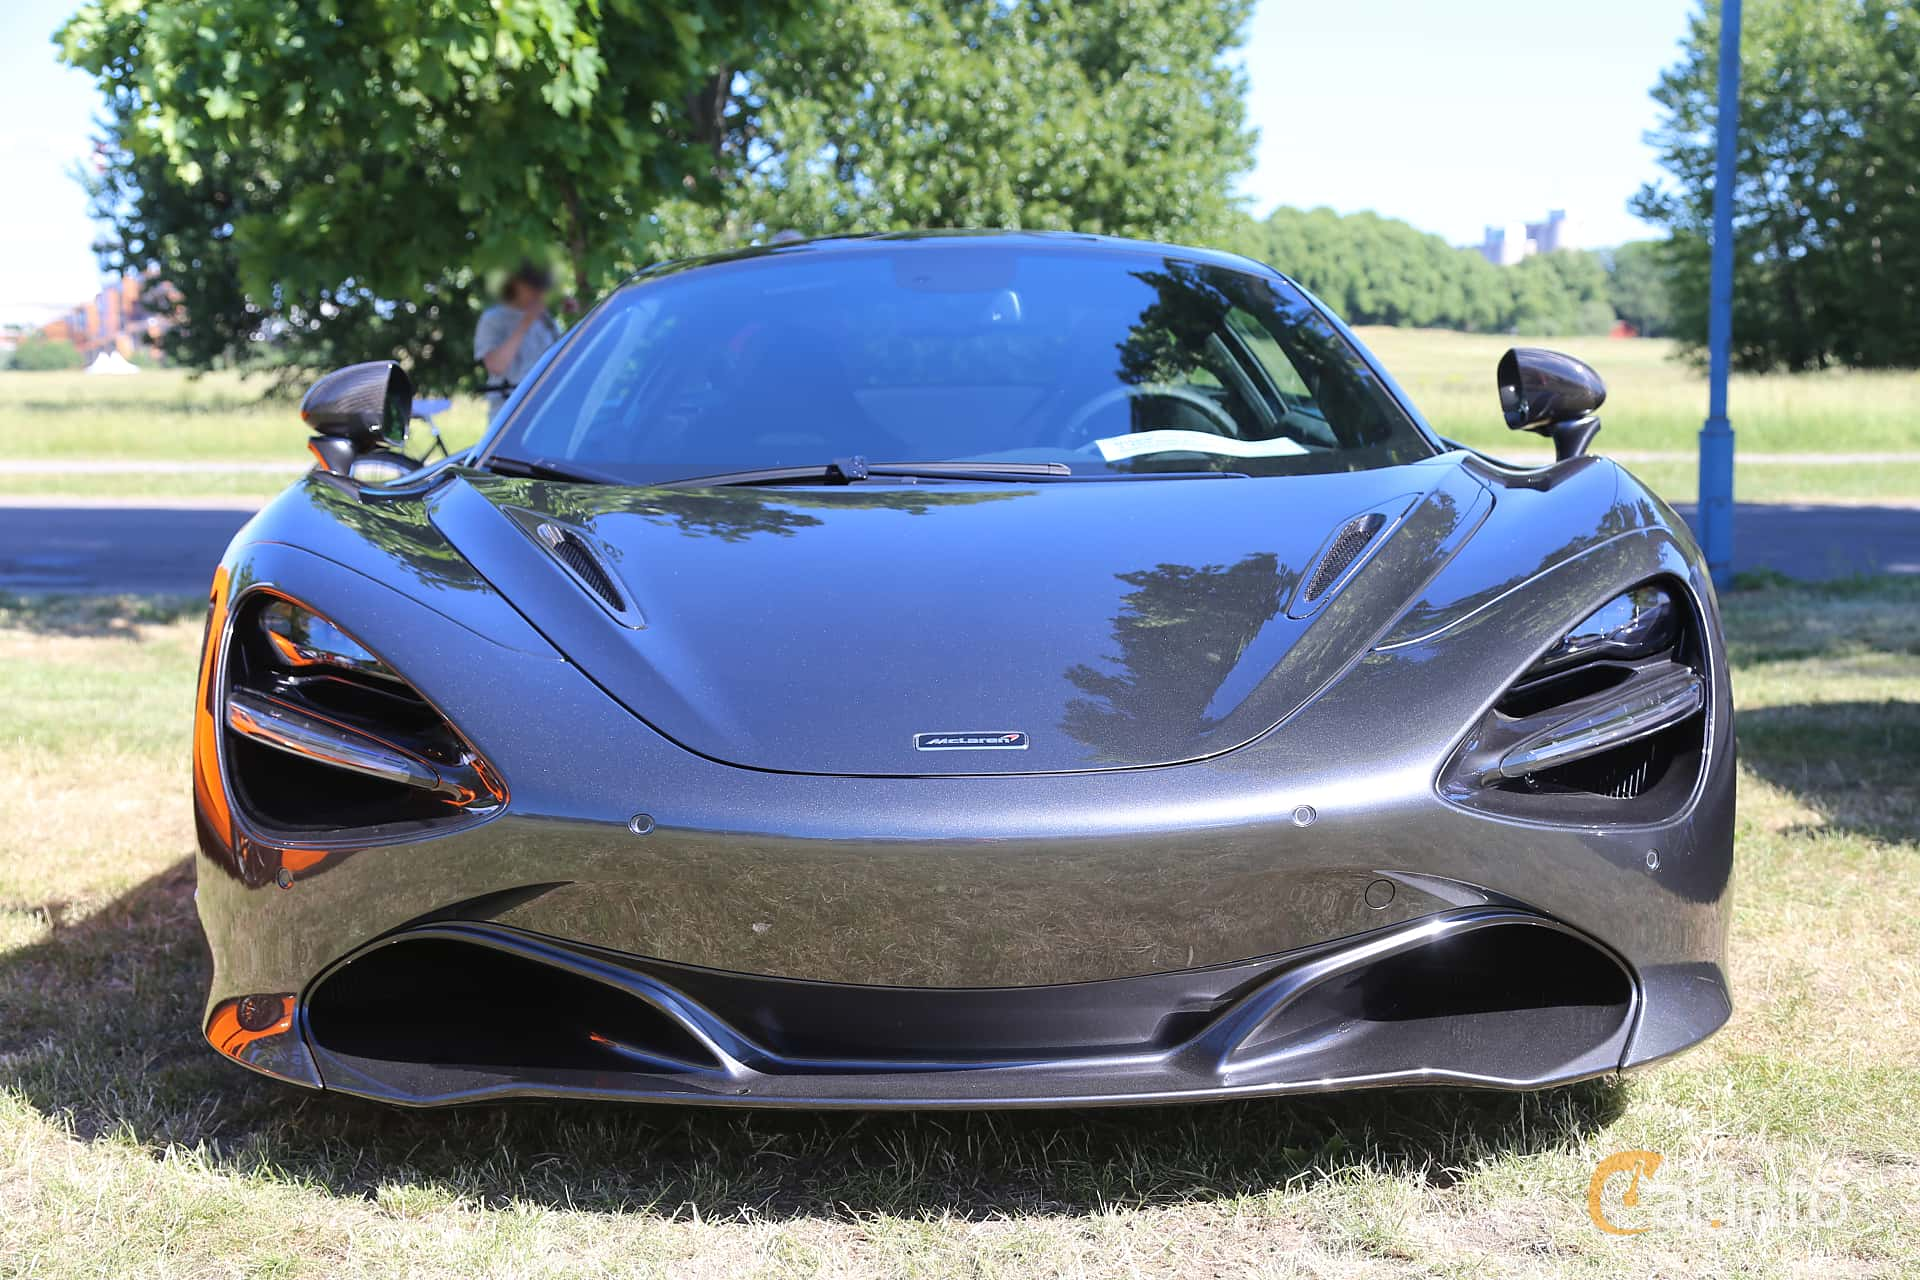 McLaren 720S 4.0 V8 DSG Sequential, 720hp, 2017 at Cars and Coffee Stockholm 2018